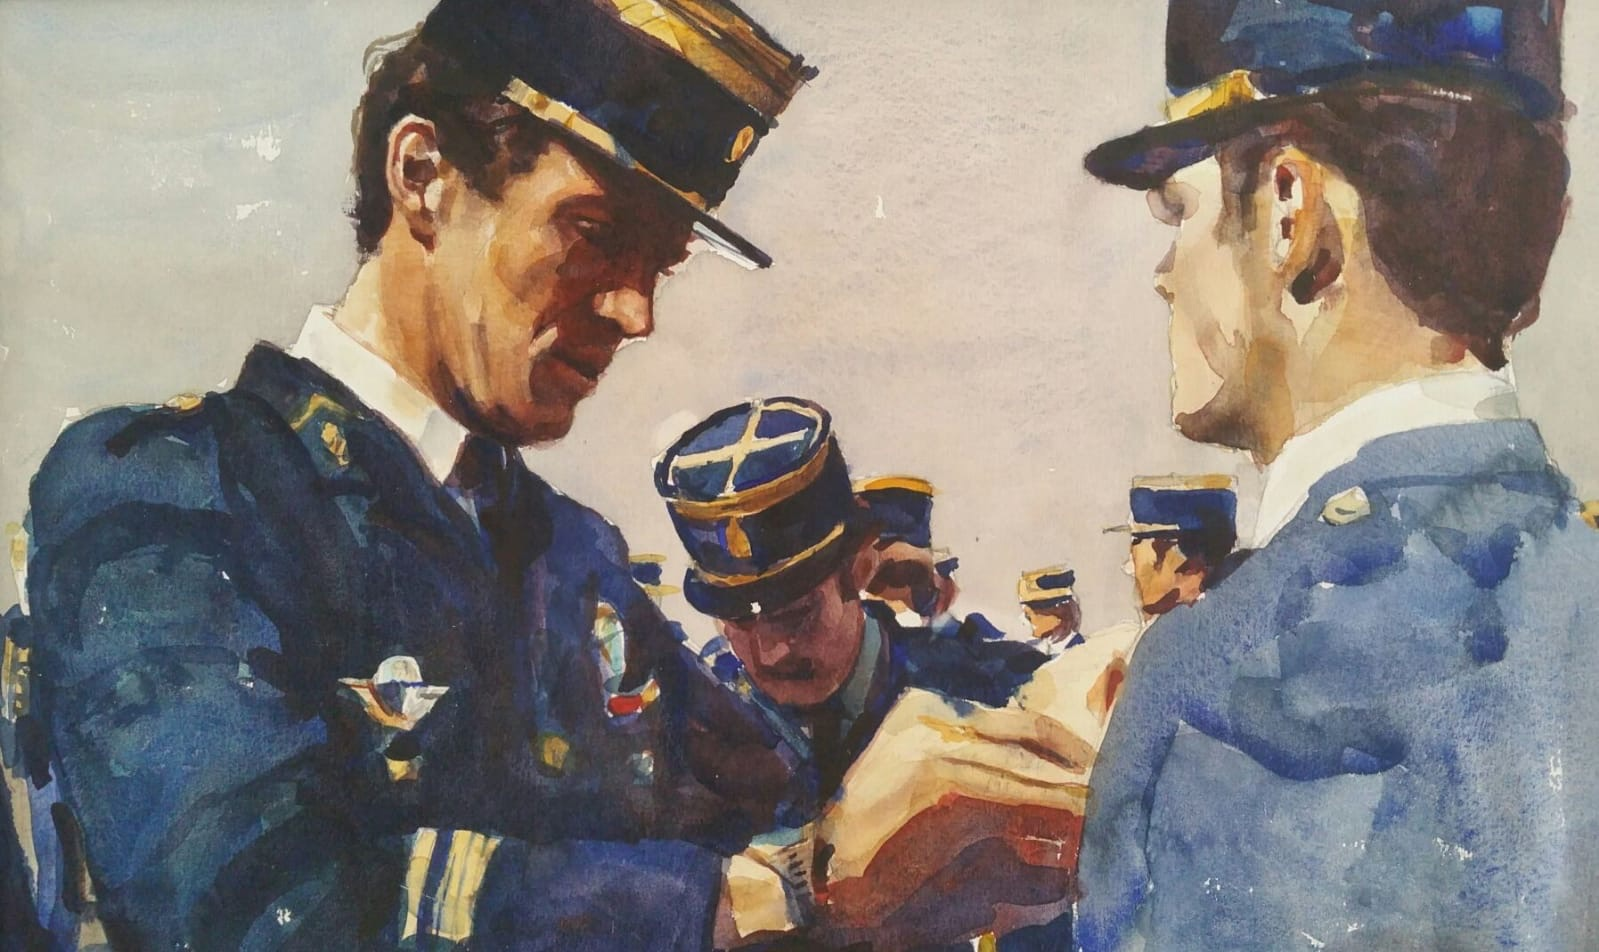 gign-christian-prouteau-mostra-store-aix-en-provence